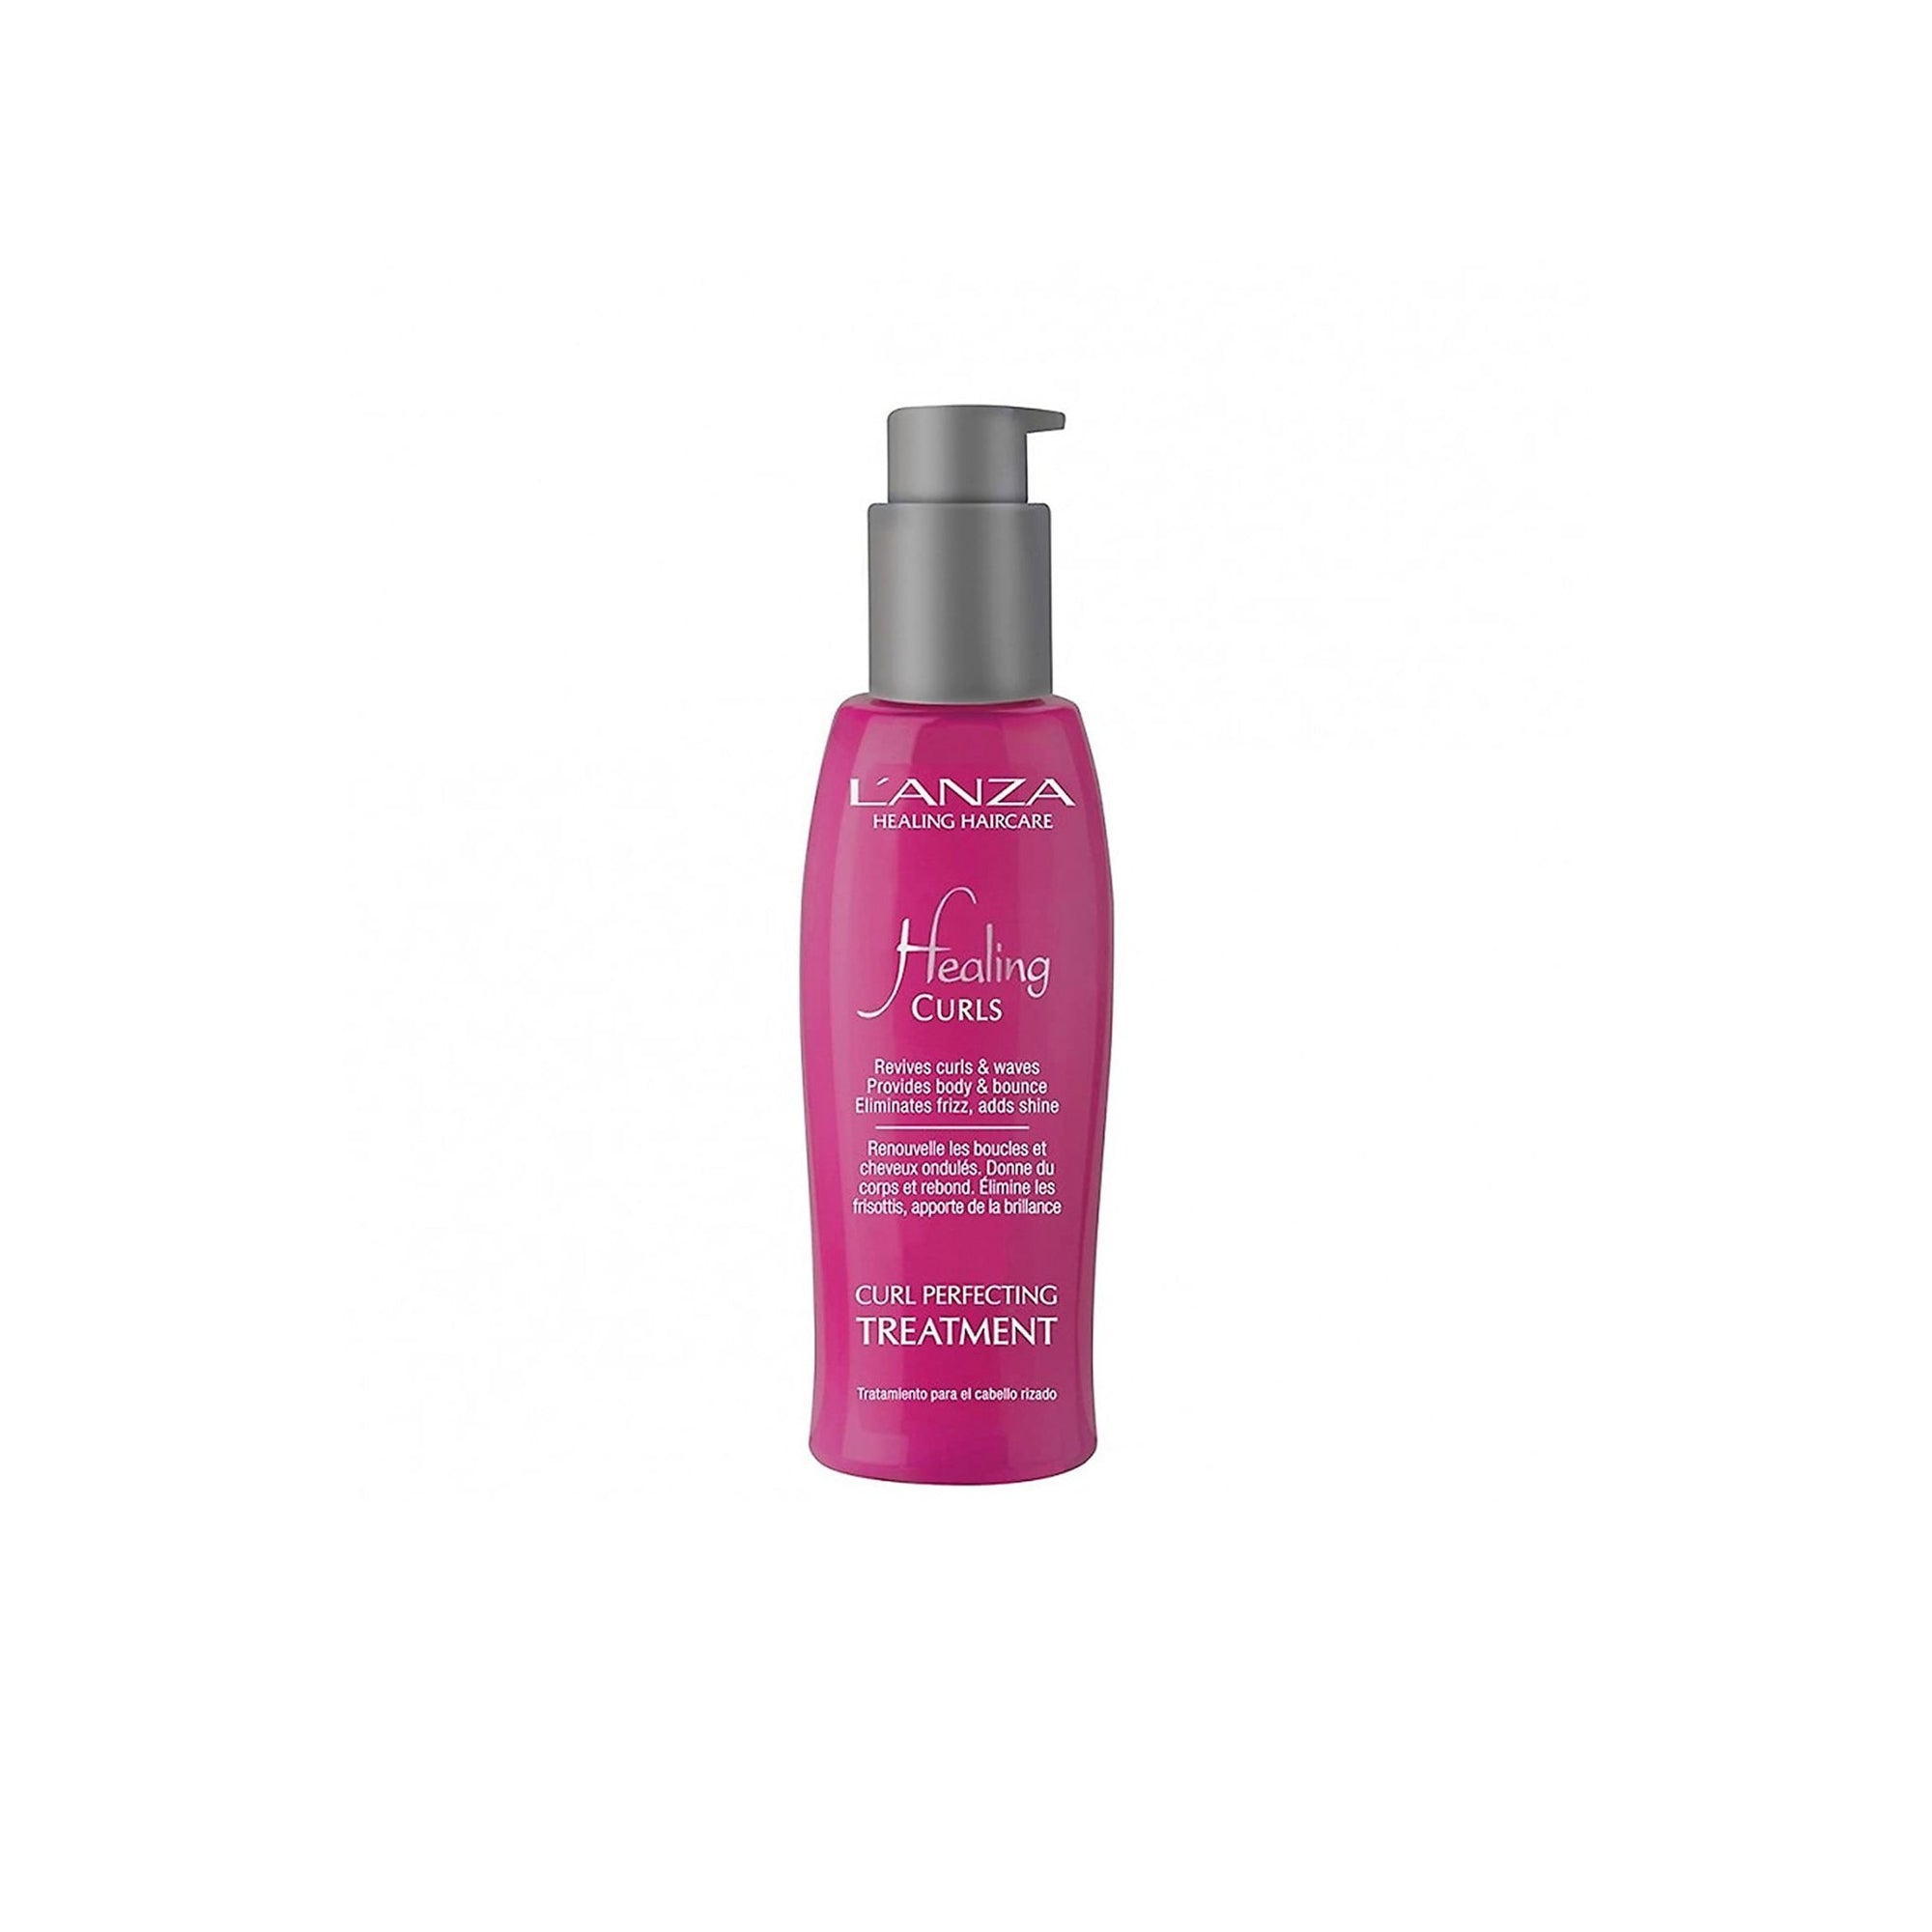 L'Anza Healing Curls Curl Perfecting Treatment 100ml